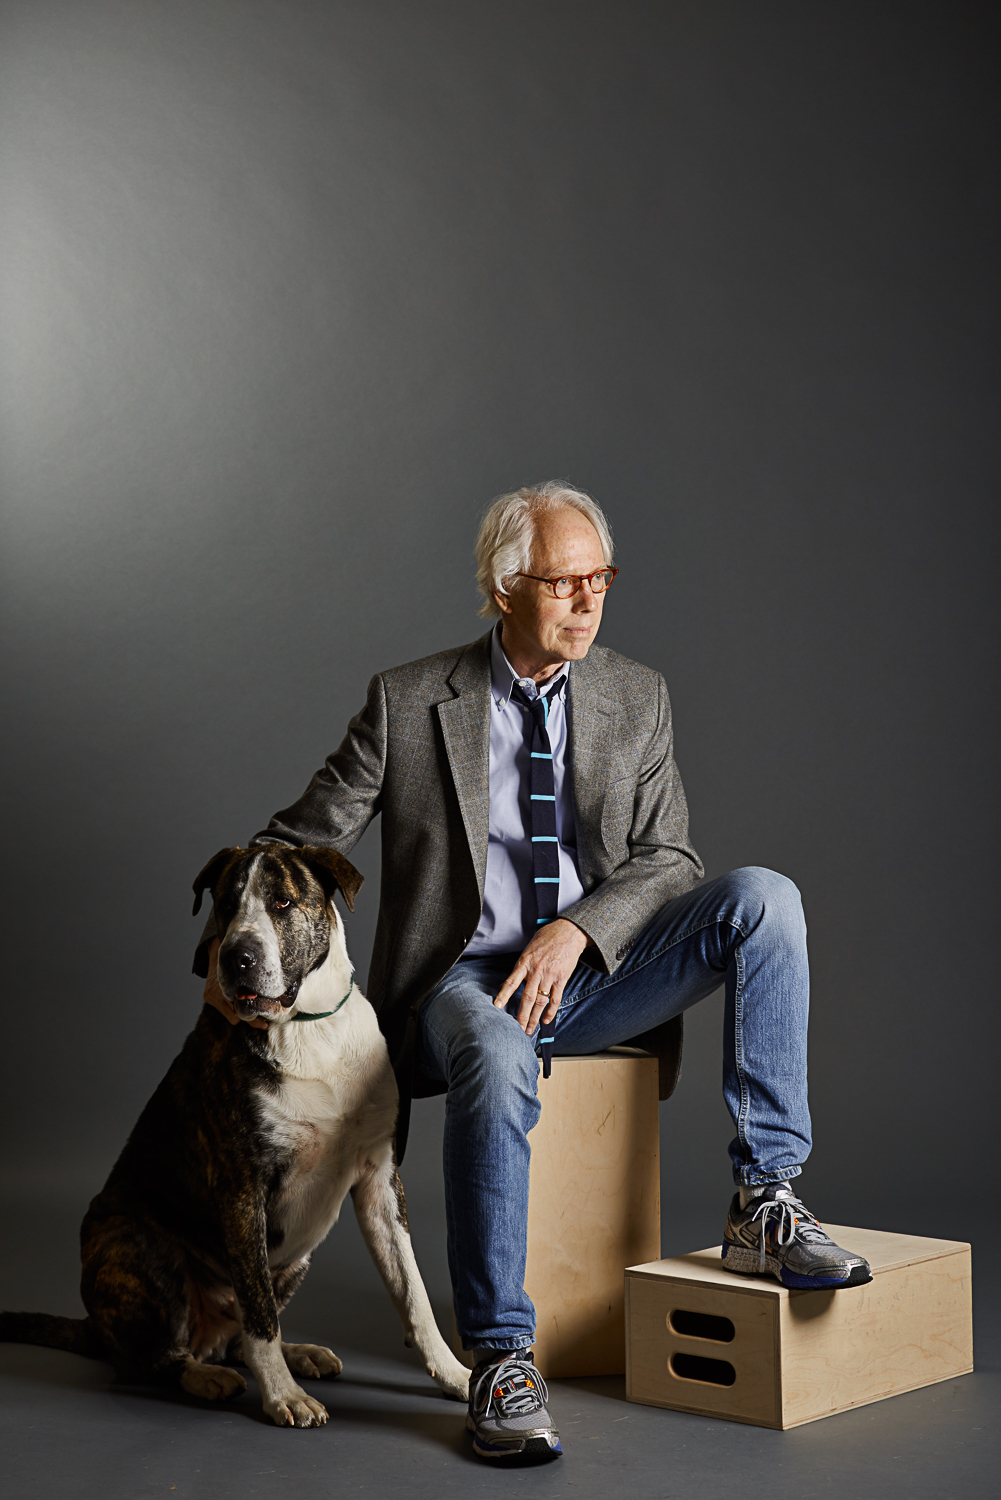 moody portrait of a older man and his dog